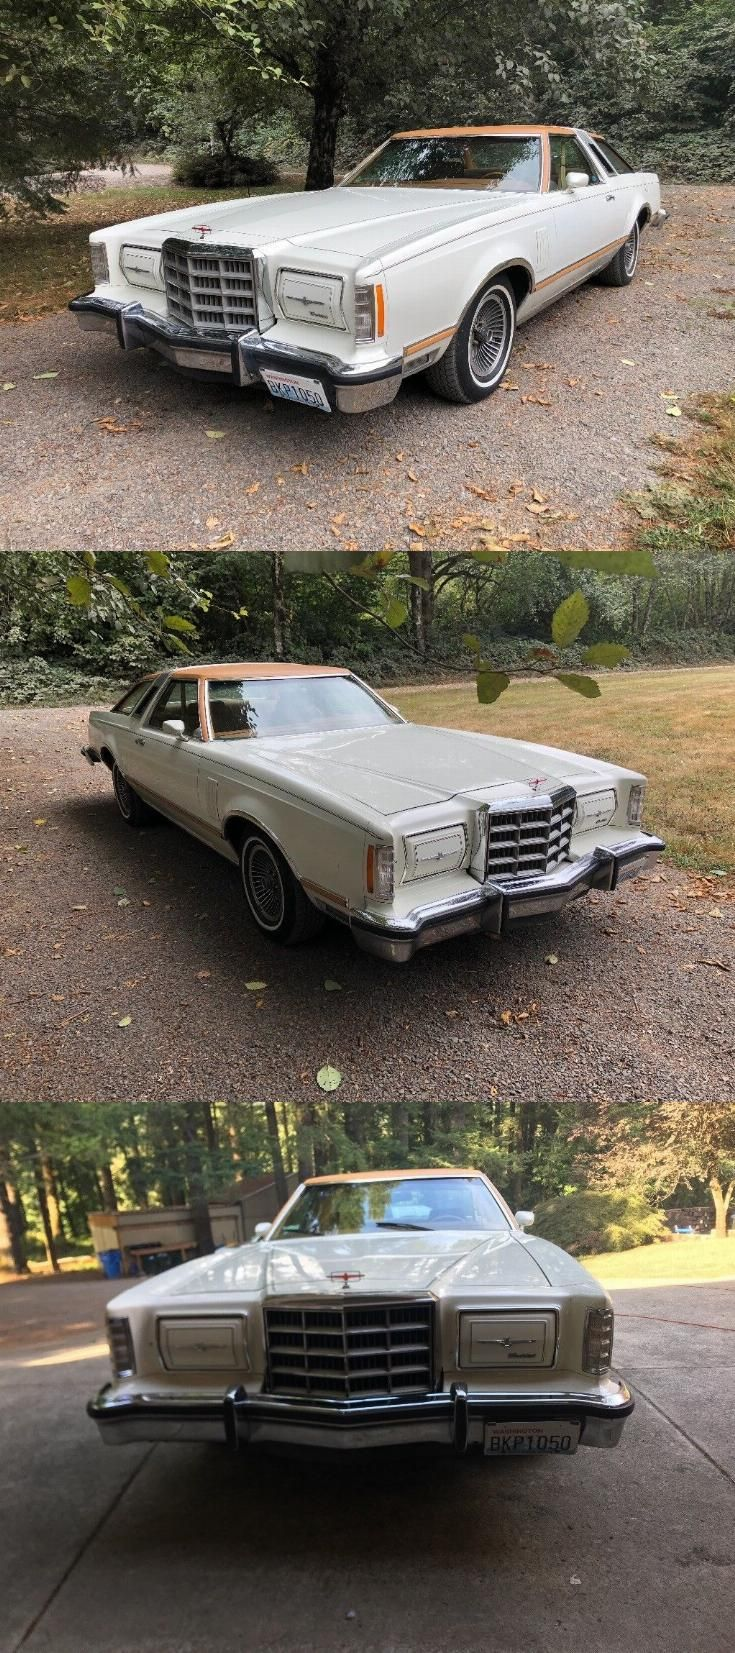 1979 Ford Thunderbird Sport Coupe Sports coupe, Ford